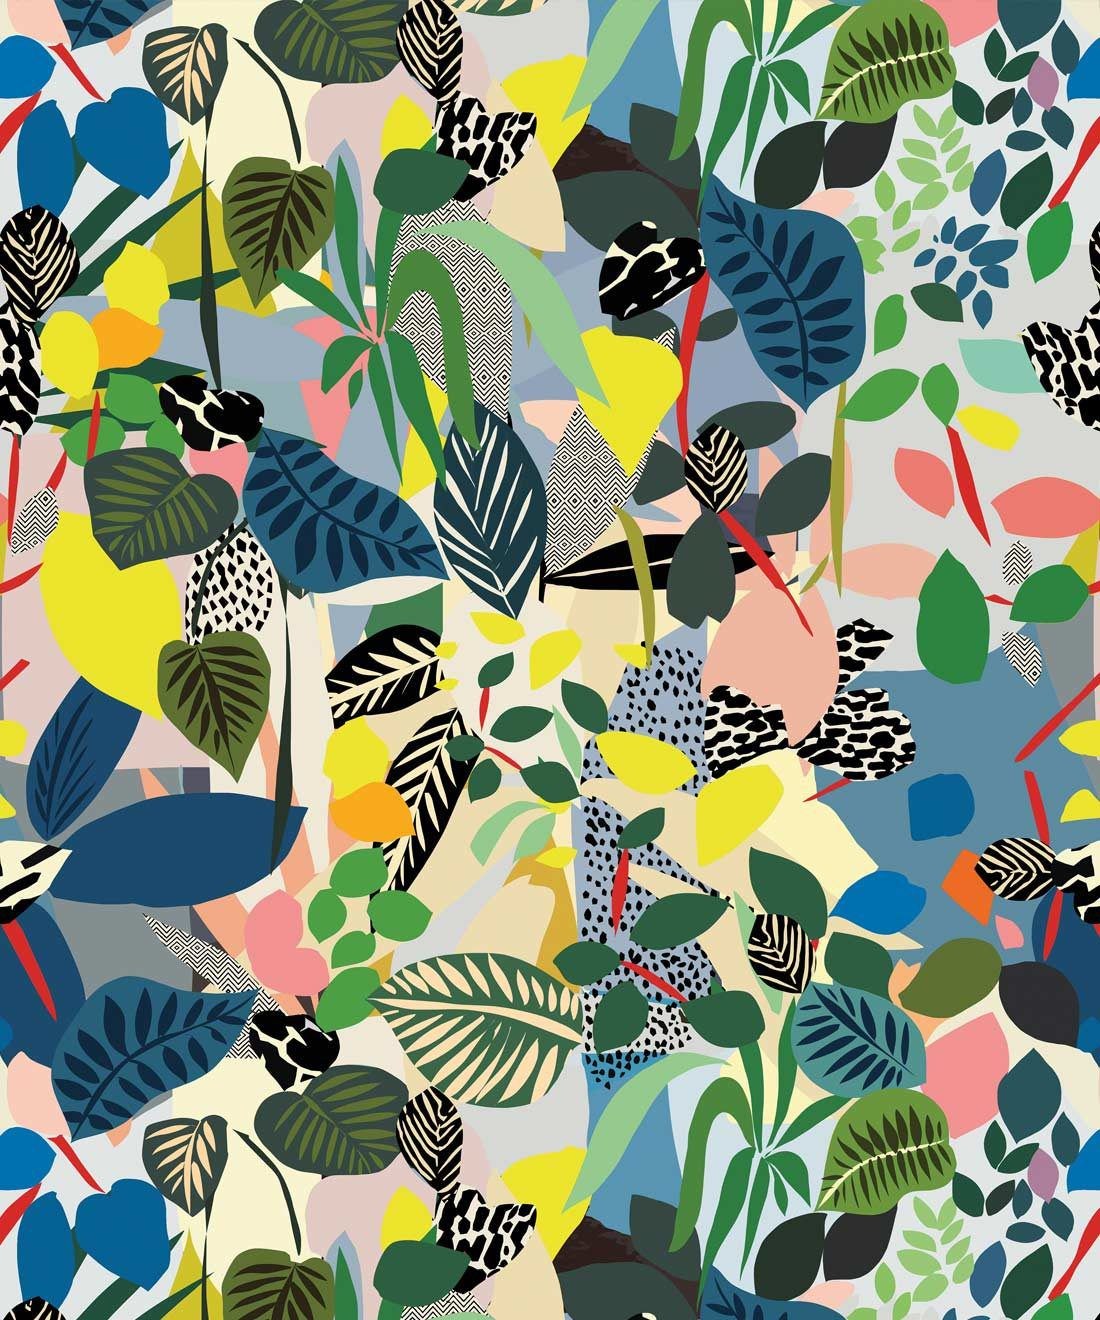 Hockney Wallpaper, Colorful Tropical Botanical Wallpaper by Kitty McCall